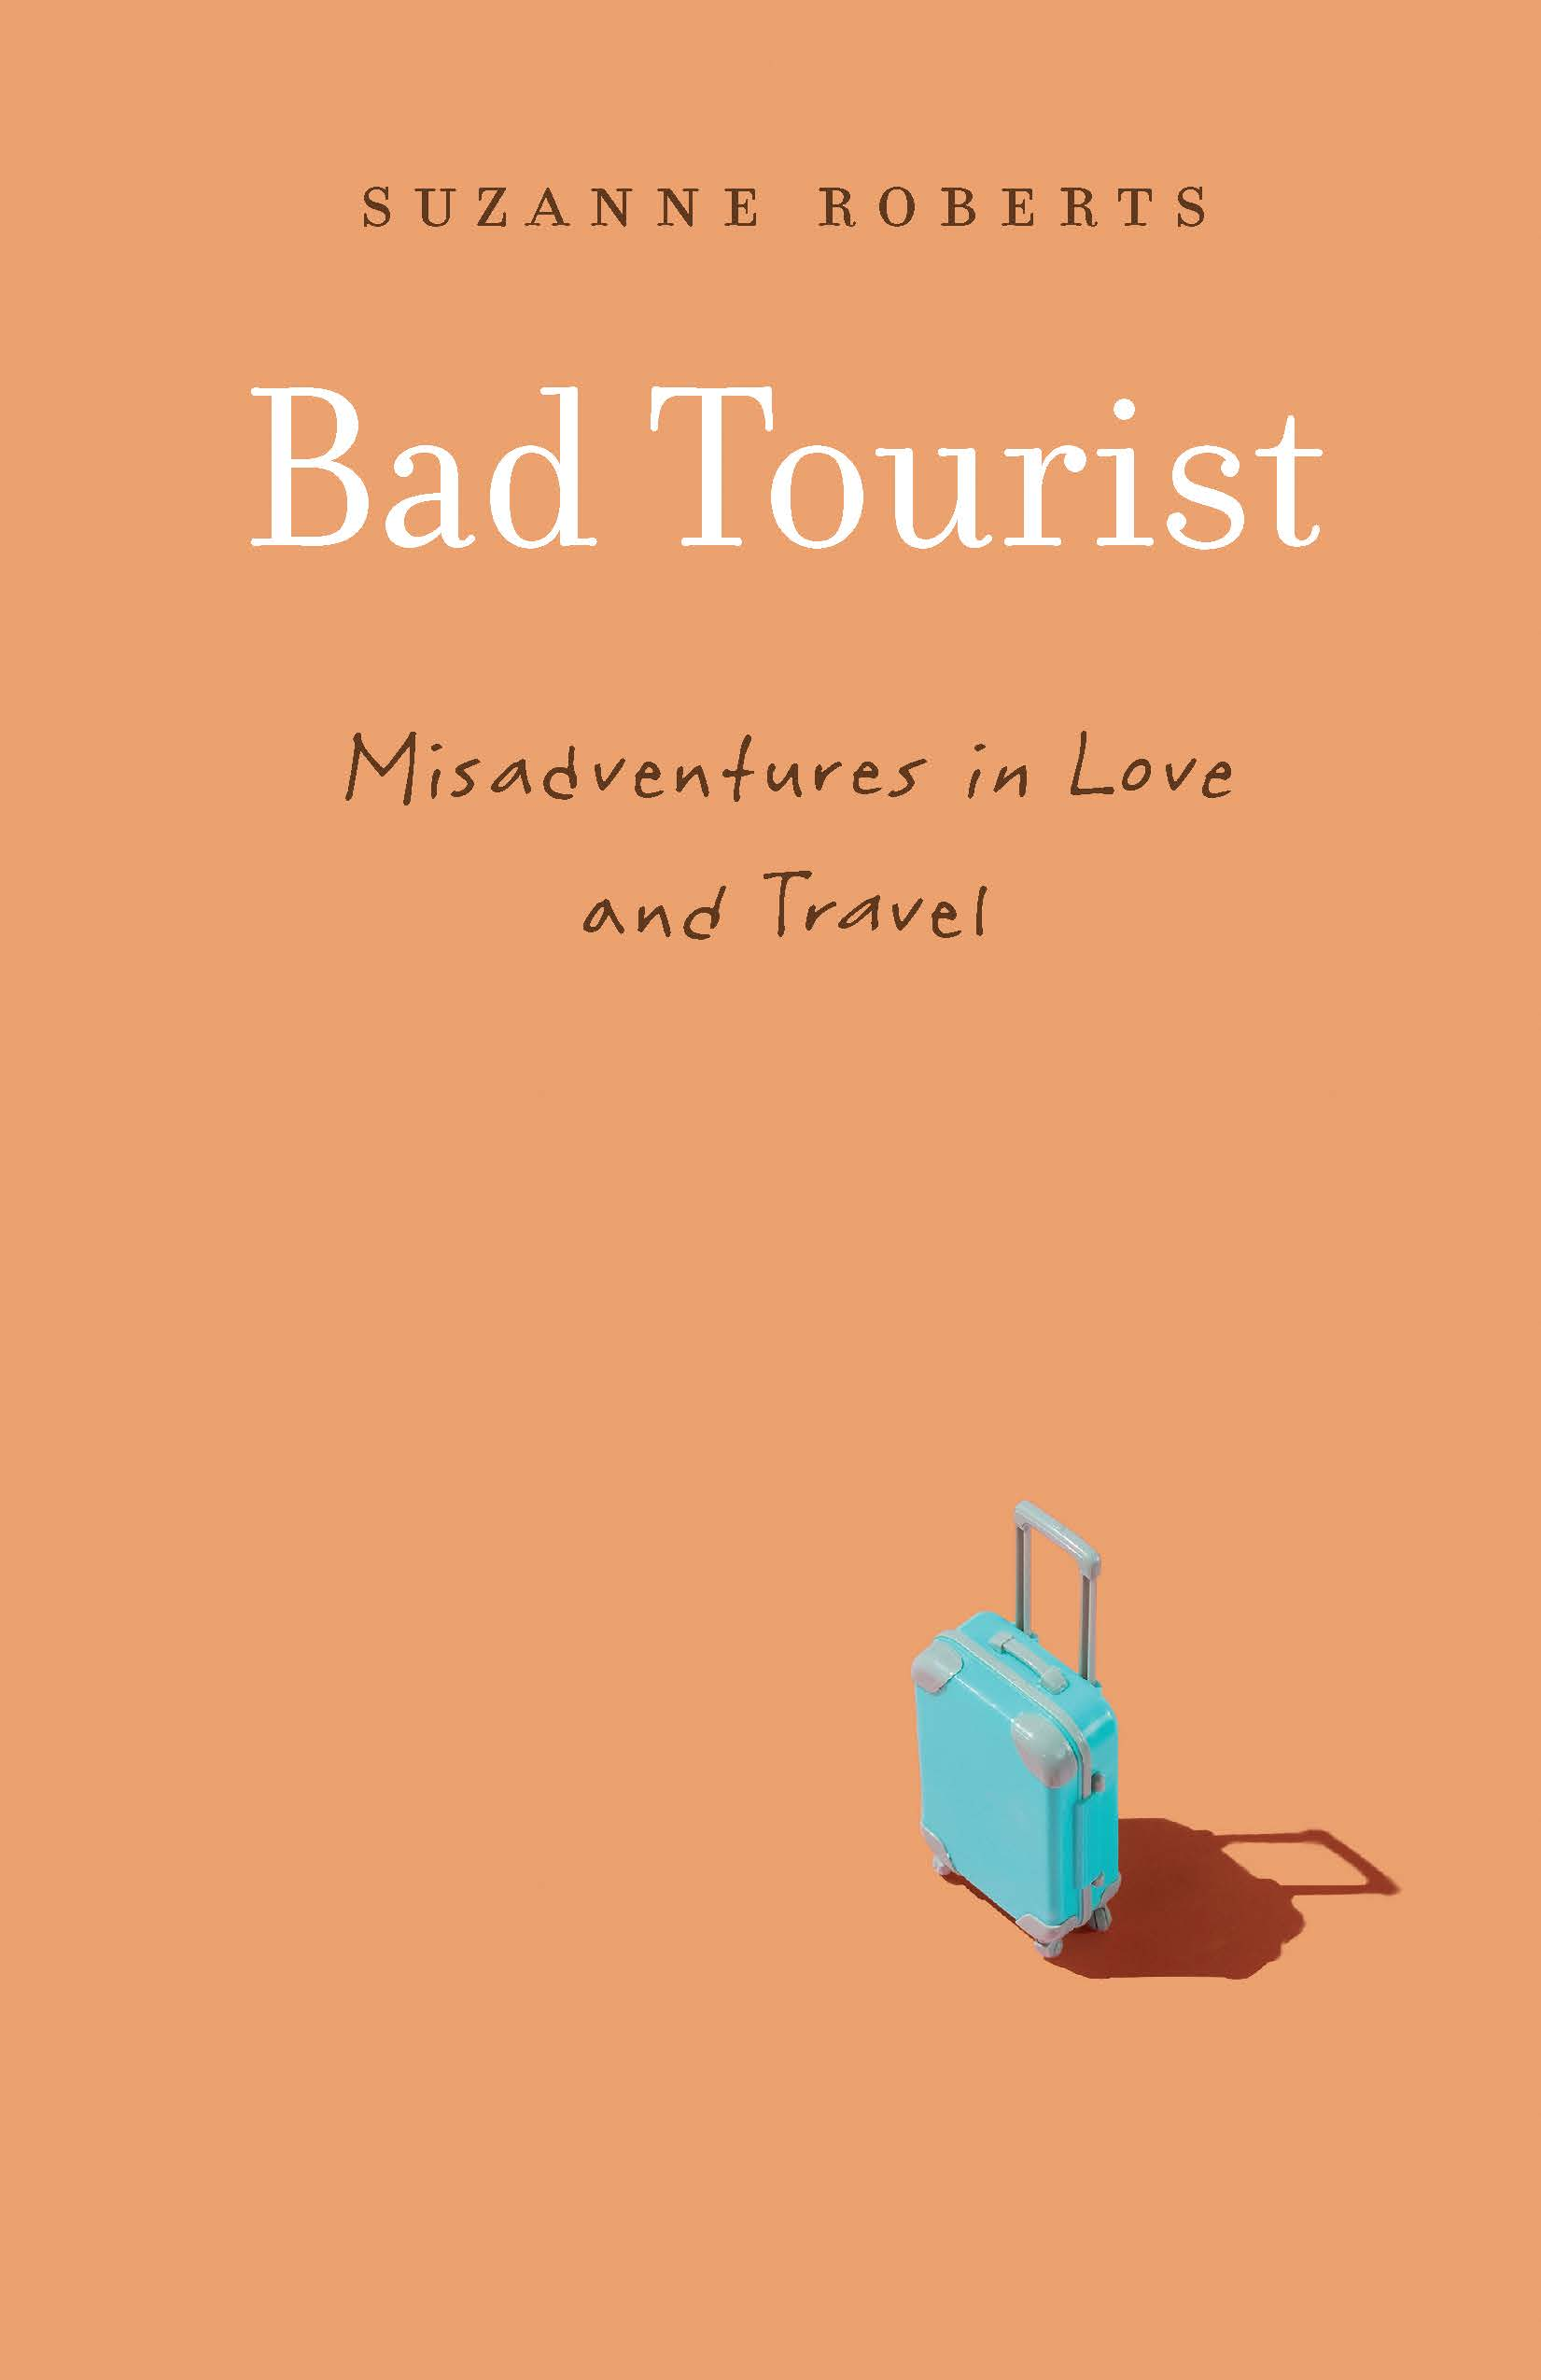 Bad Tourist: Misadventures in Love and Travel